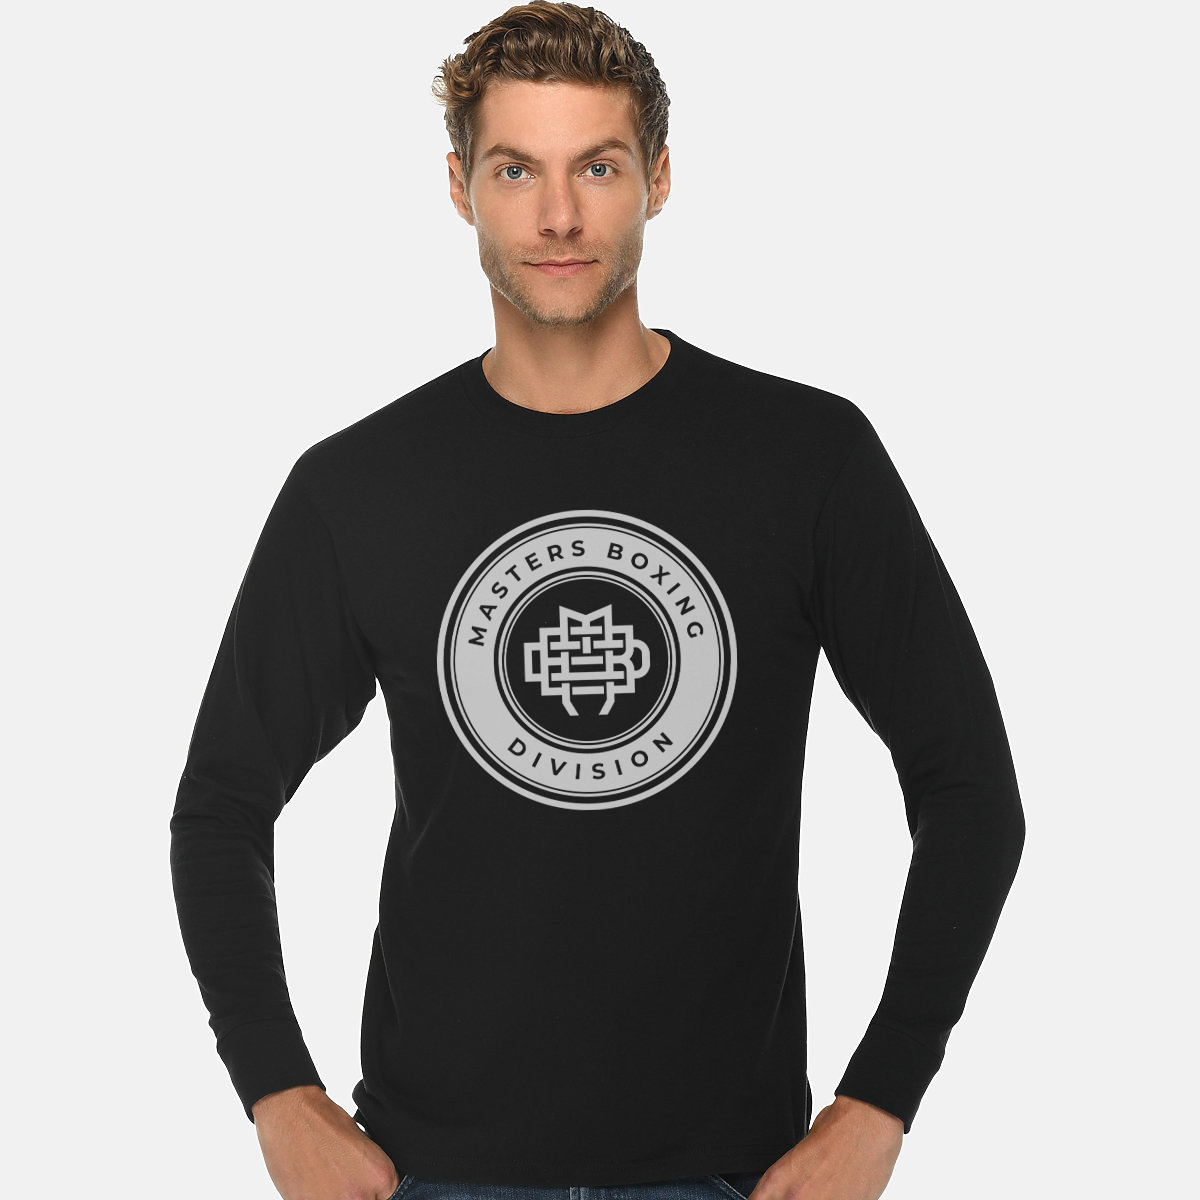 Masters Boxing Division Black long sleeve